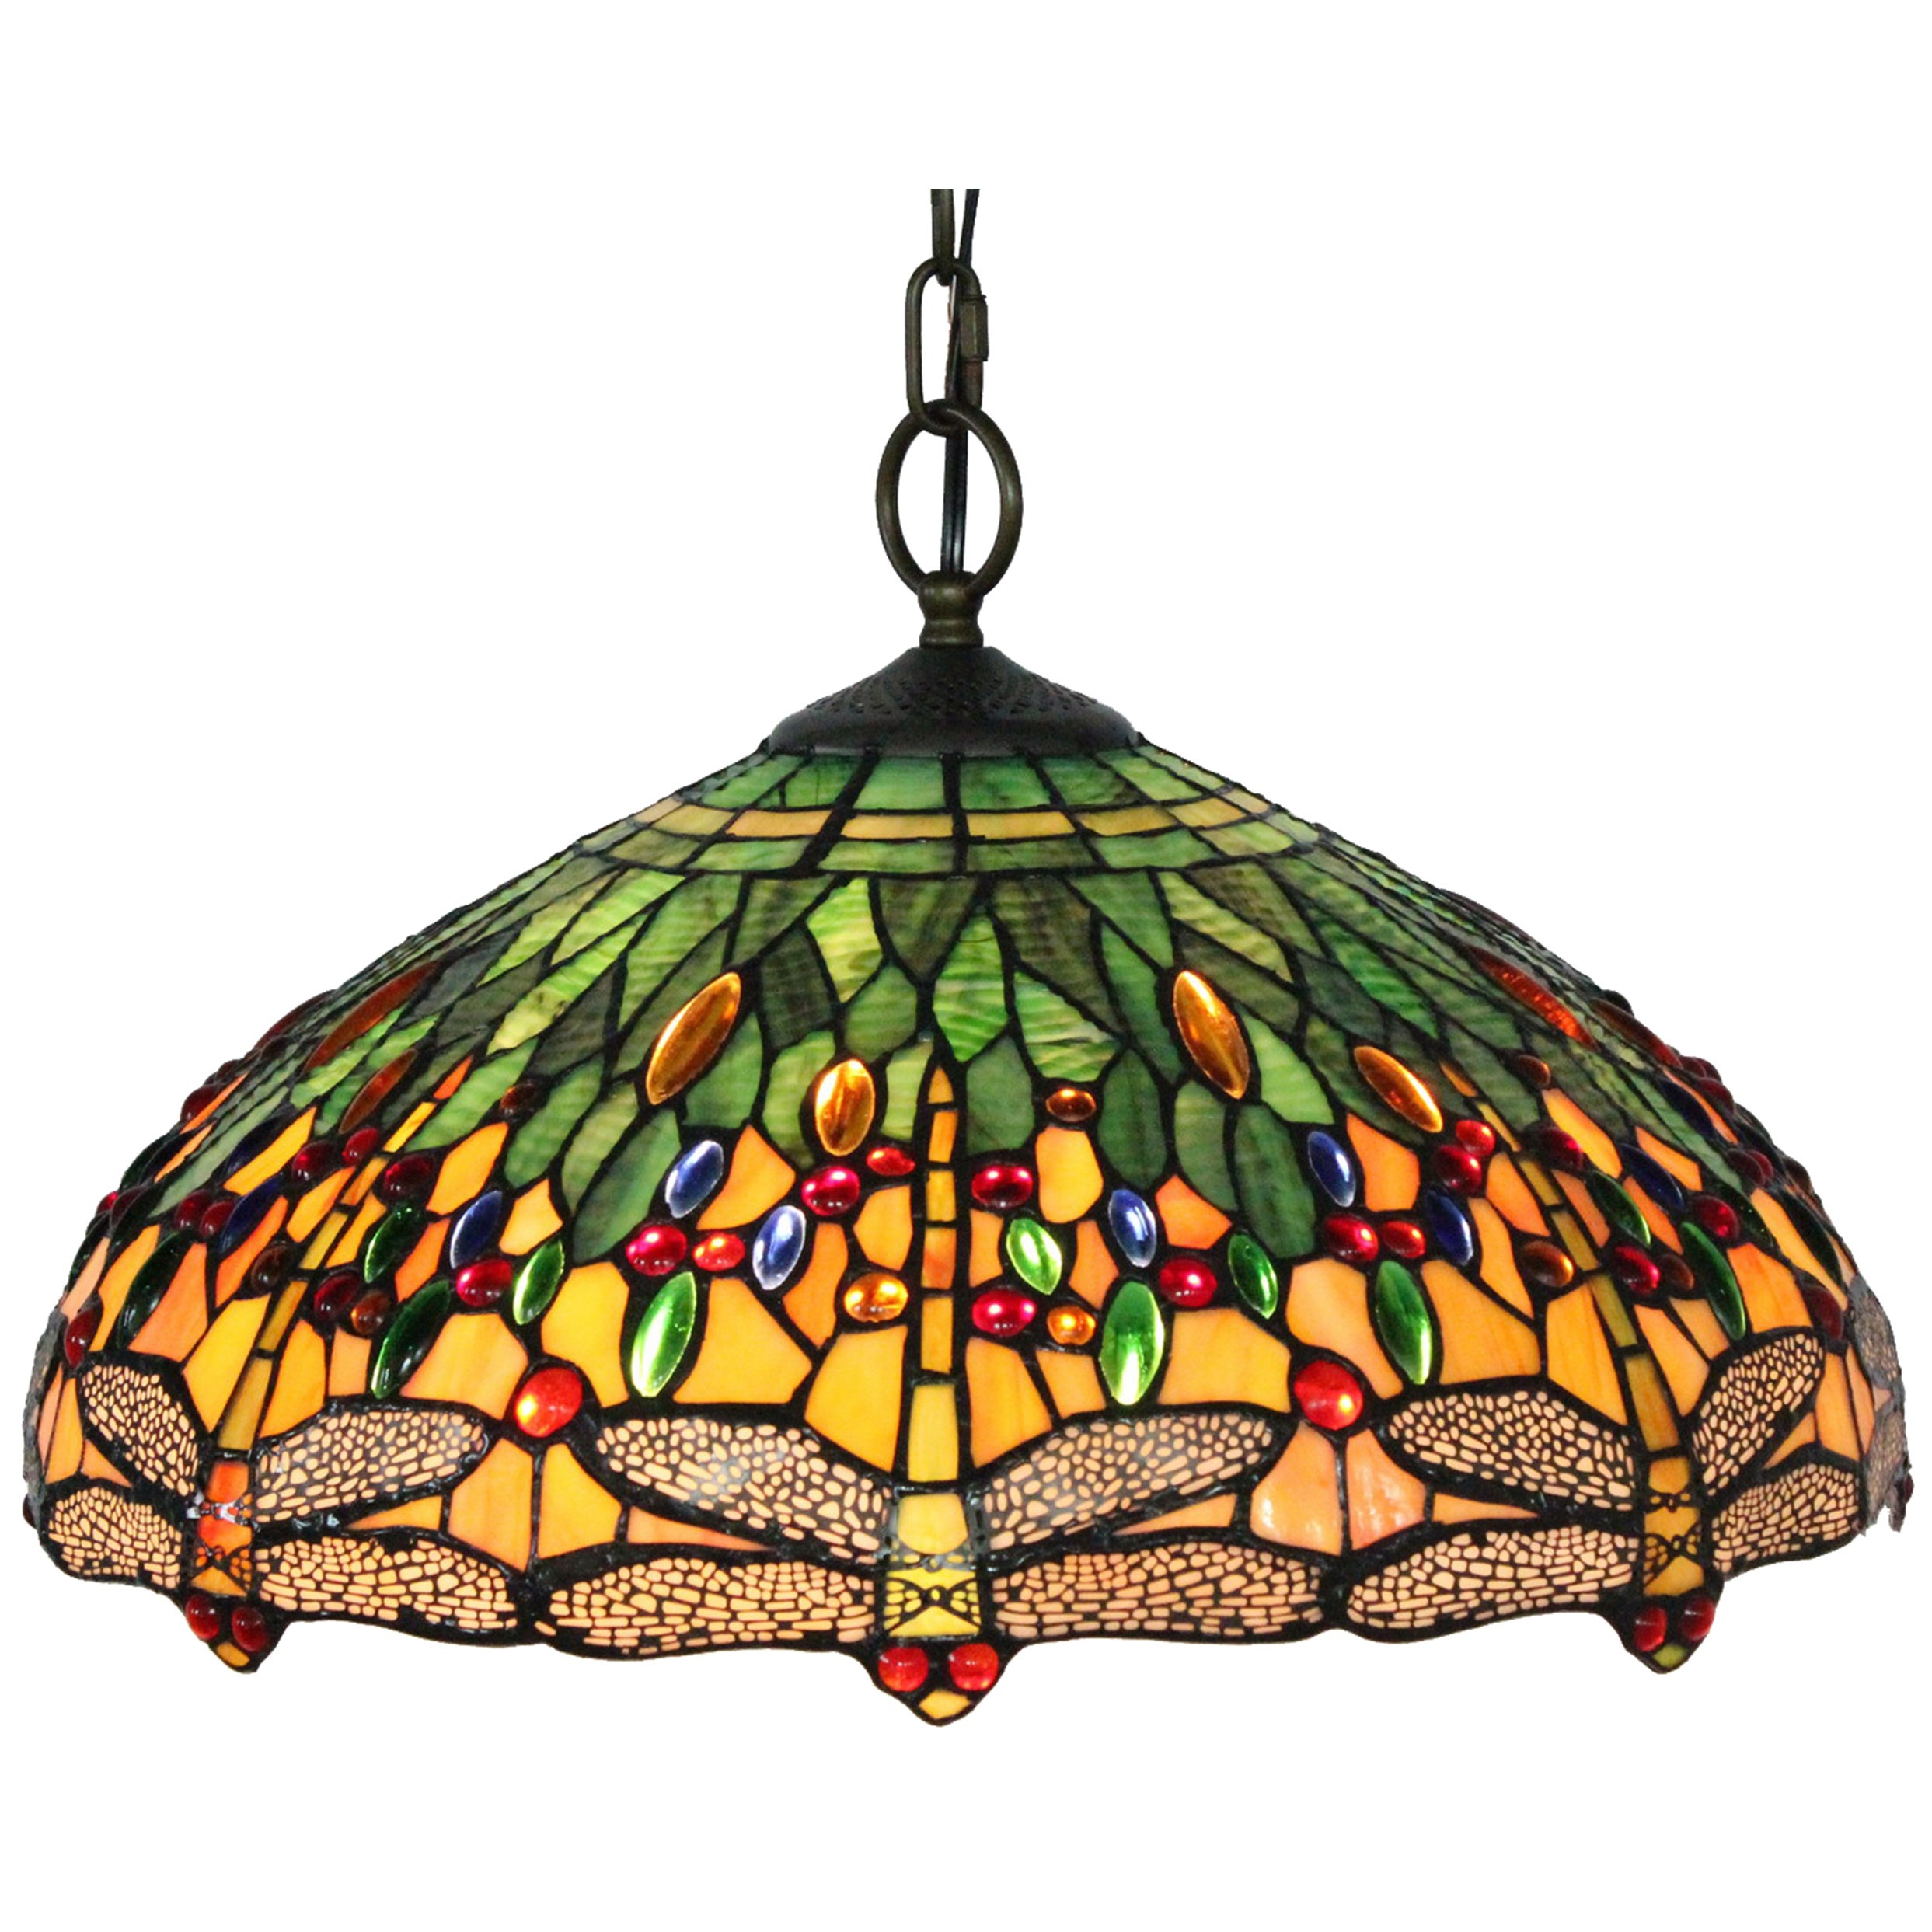 tiffany style dragonfly hanging lamp overstock shopping great. Black Bedroom Furniture Sets. Home Design Ideas